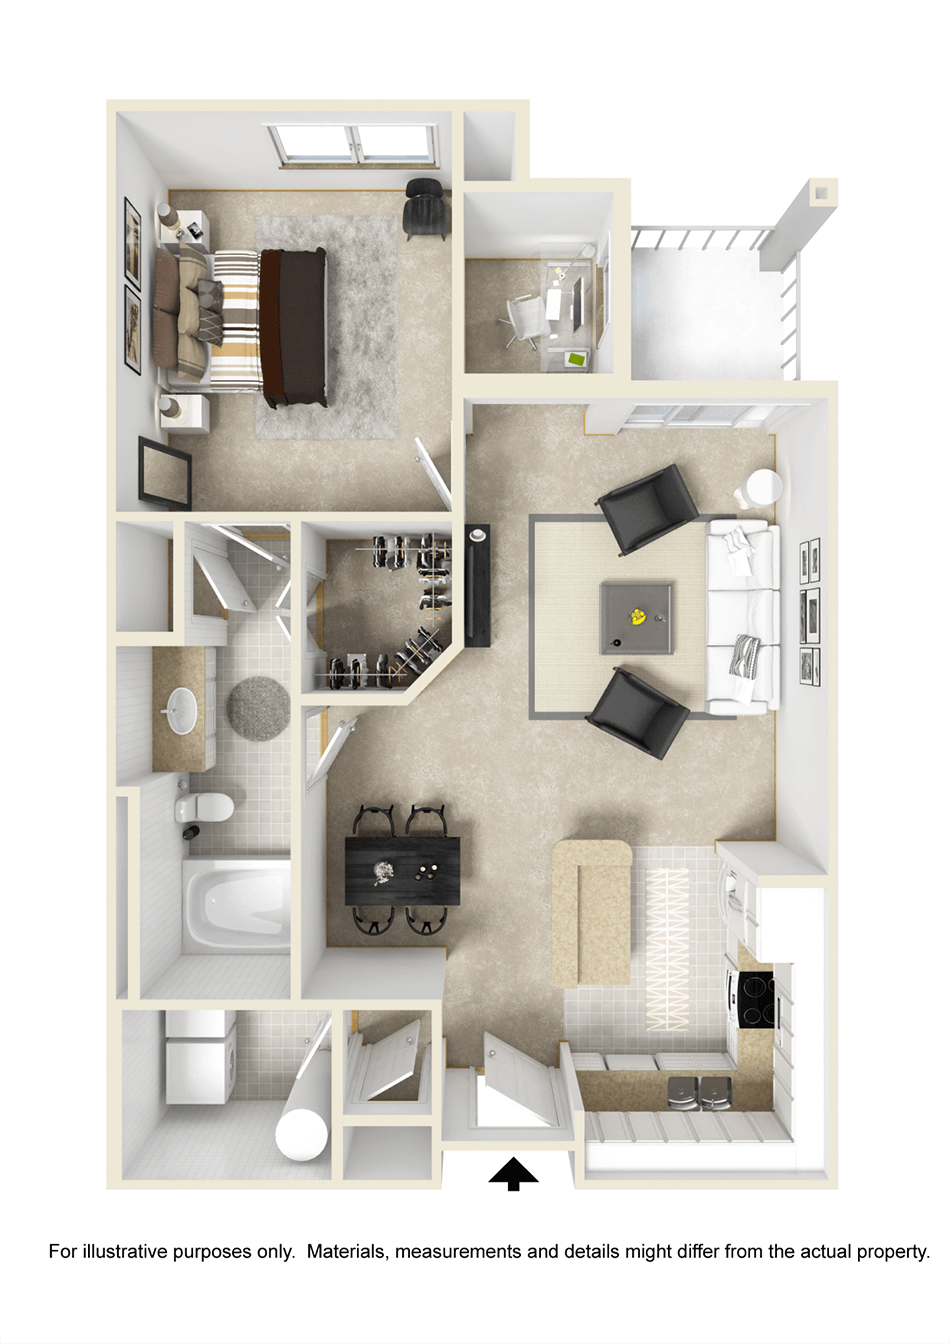 3 Bedroom Apartments Central Florida